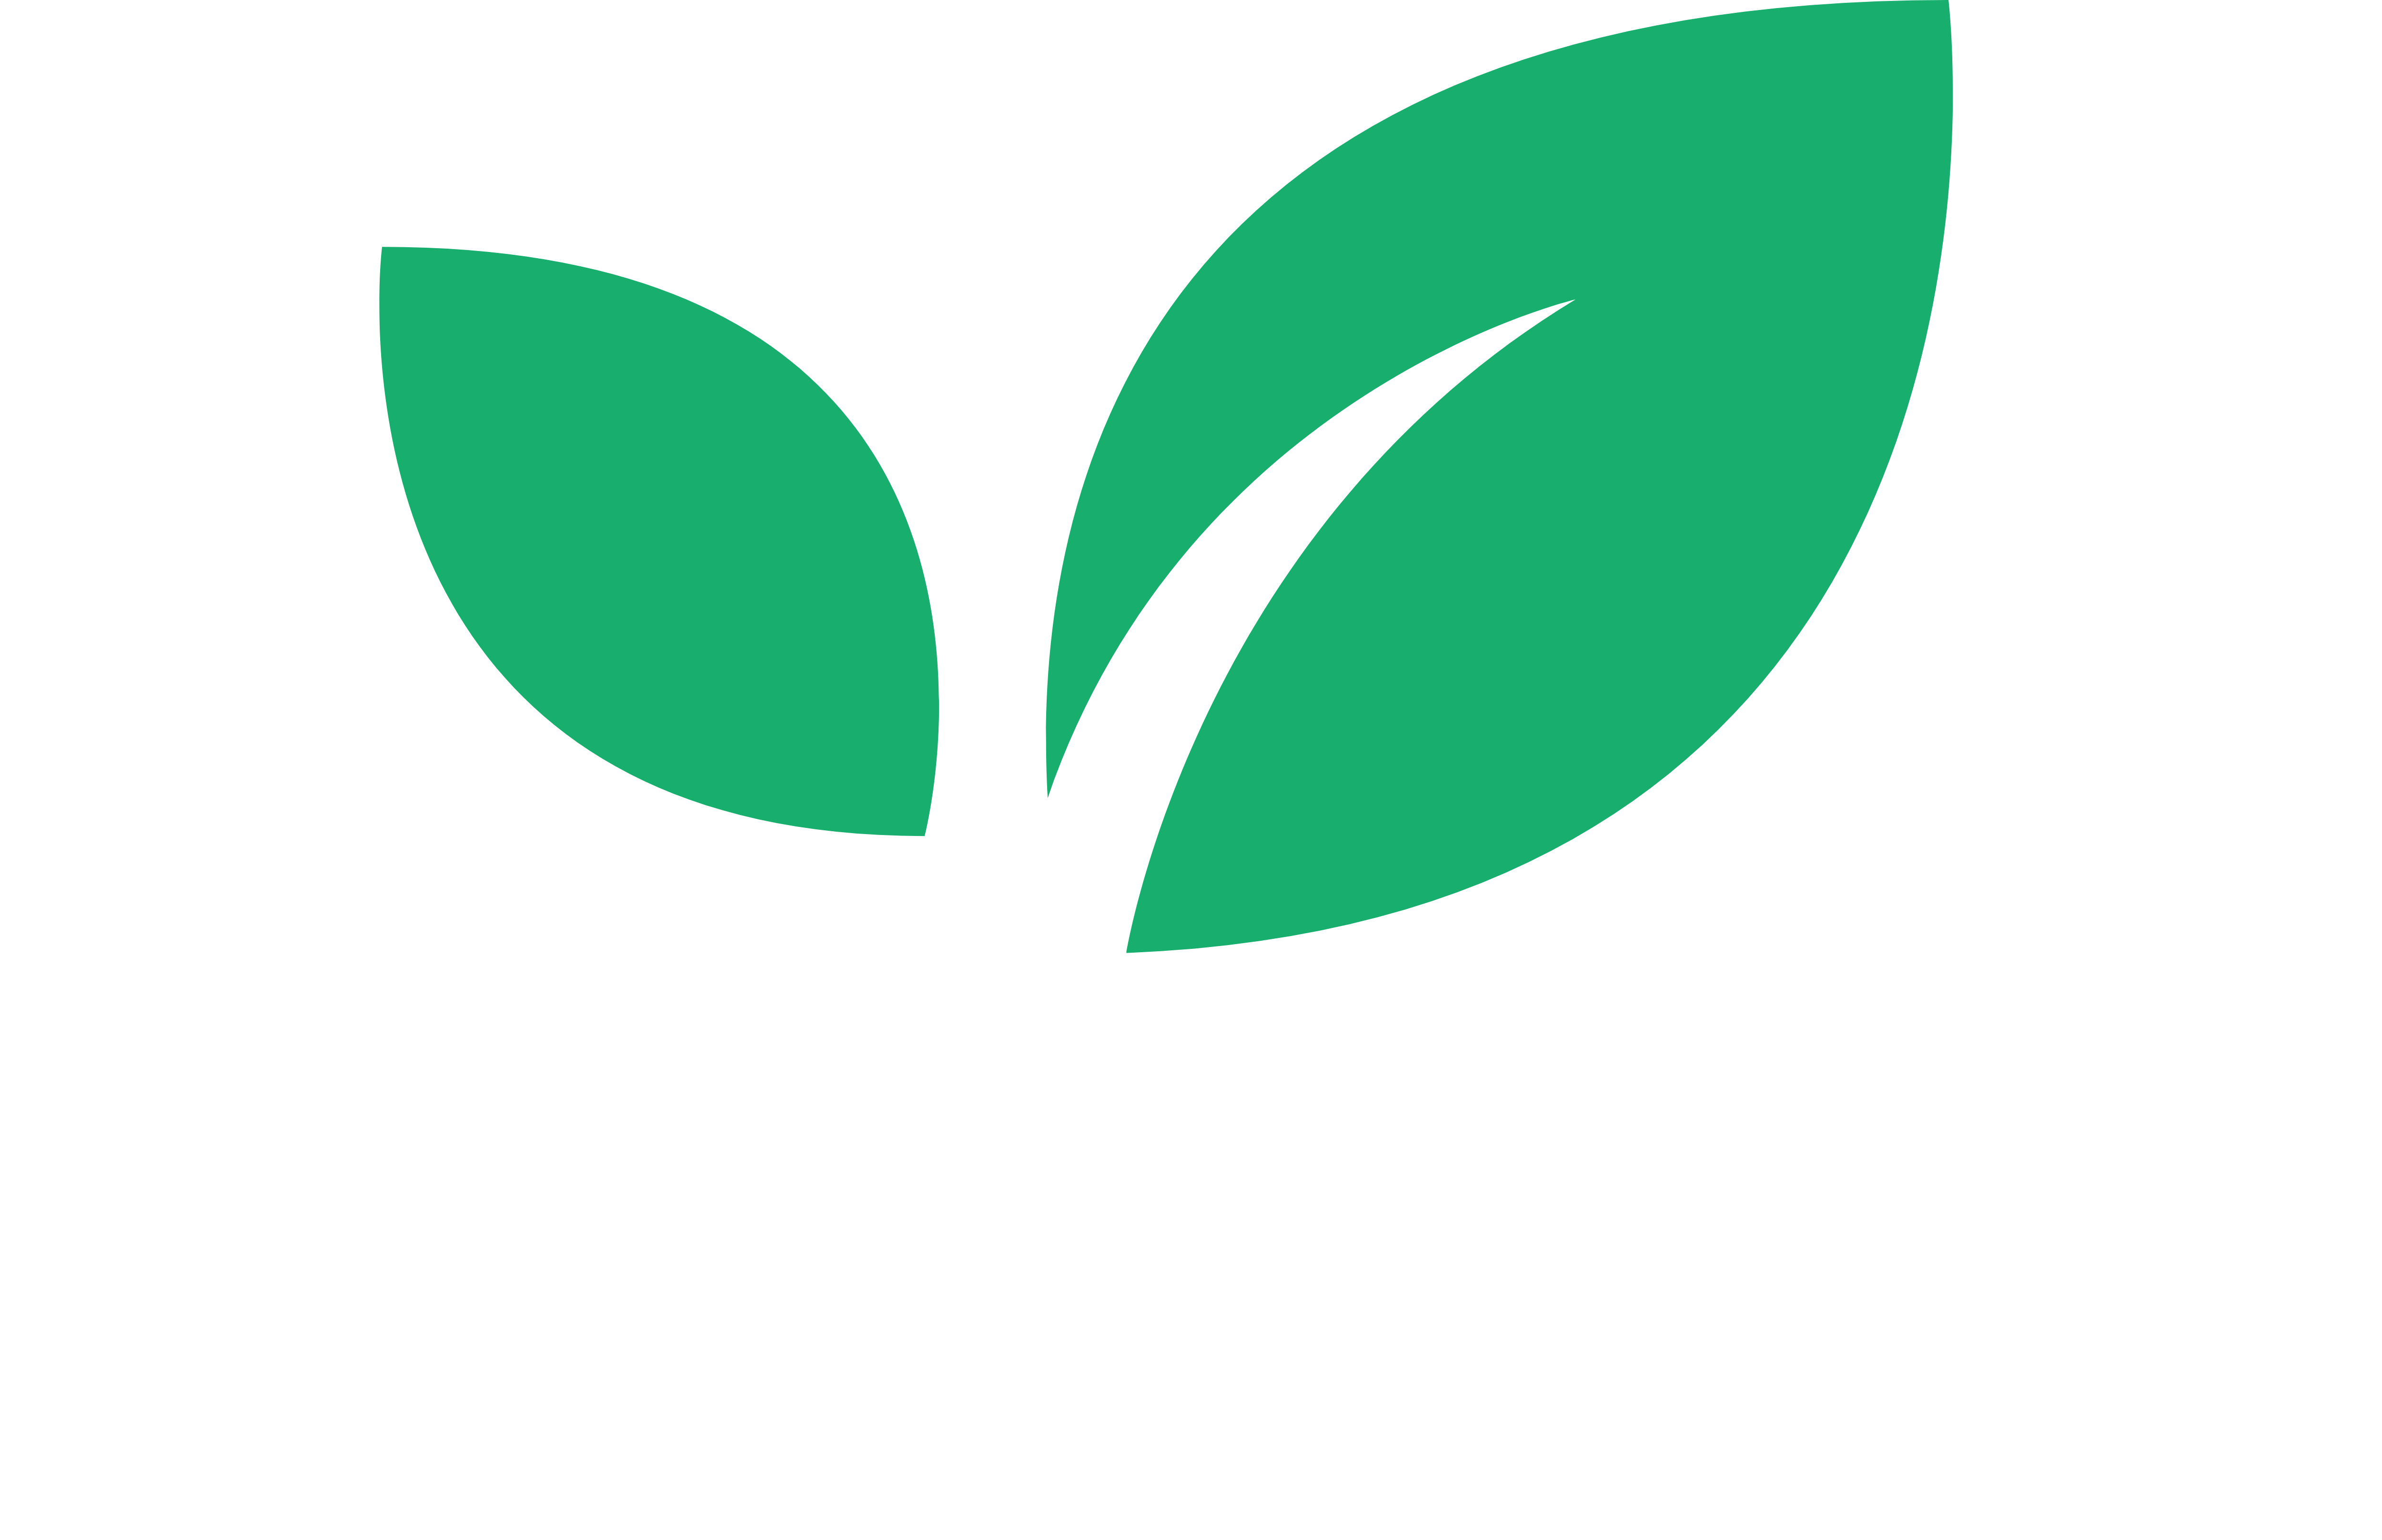 Megaproducts